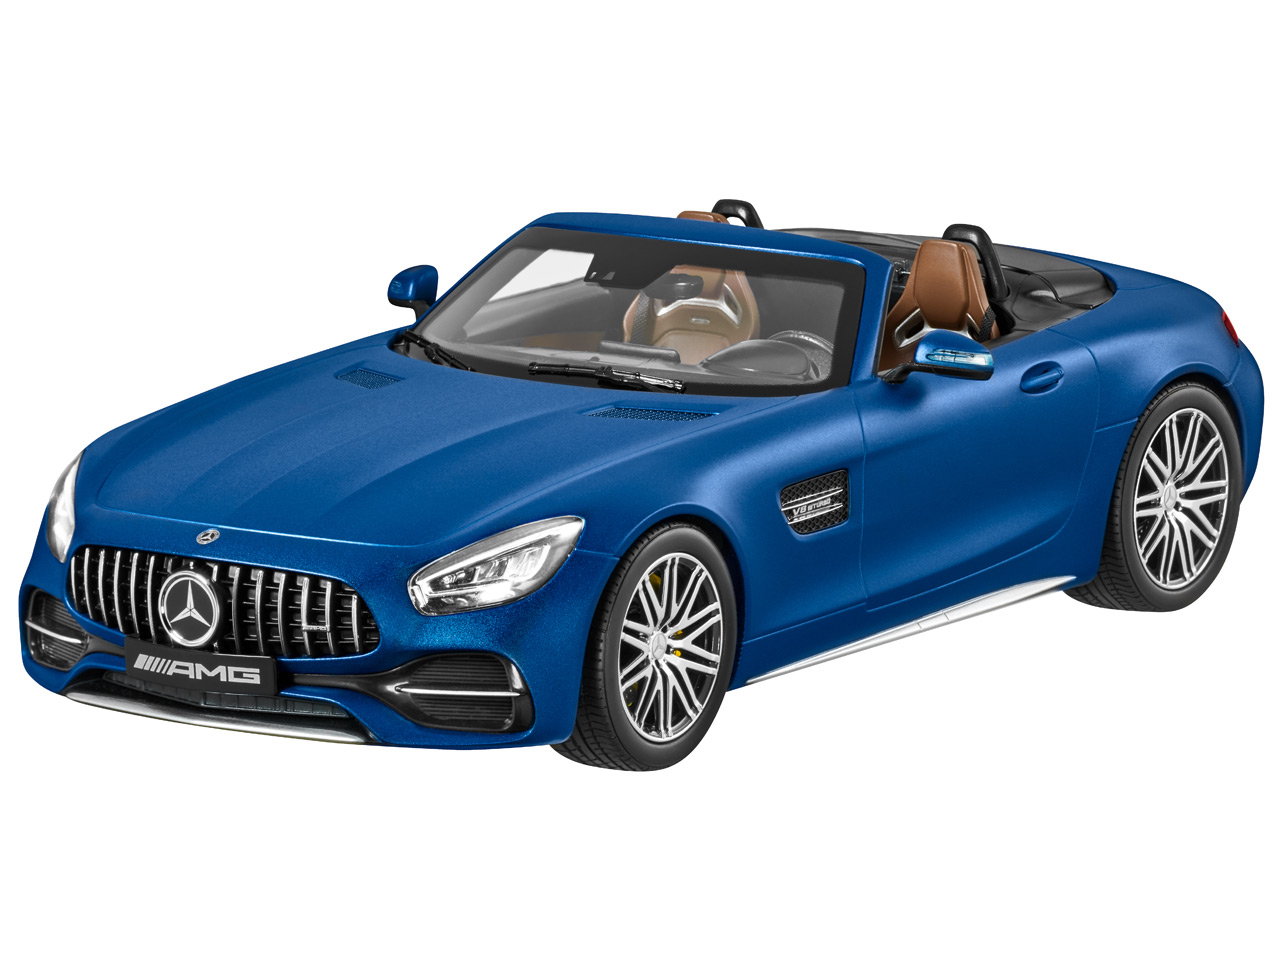 Mercedes Amg Gt C Roadster 2019 Facelift 1 18 In Blue B66960563 Mercedes Benz Classic Store